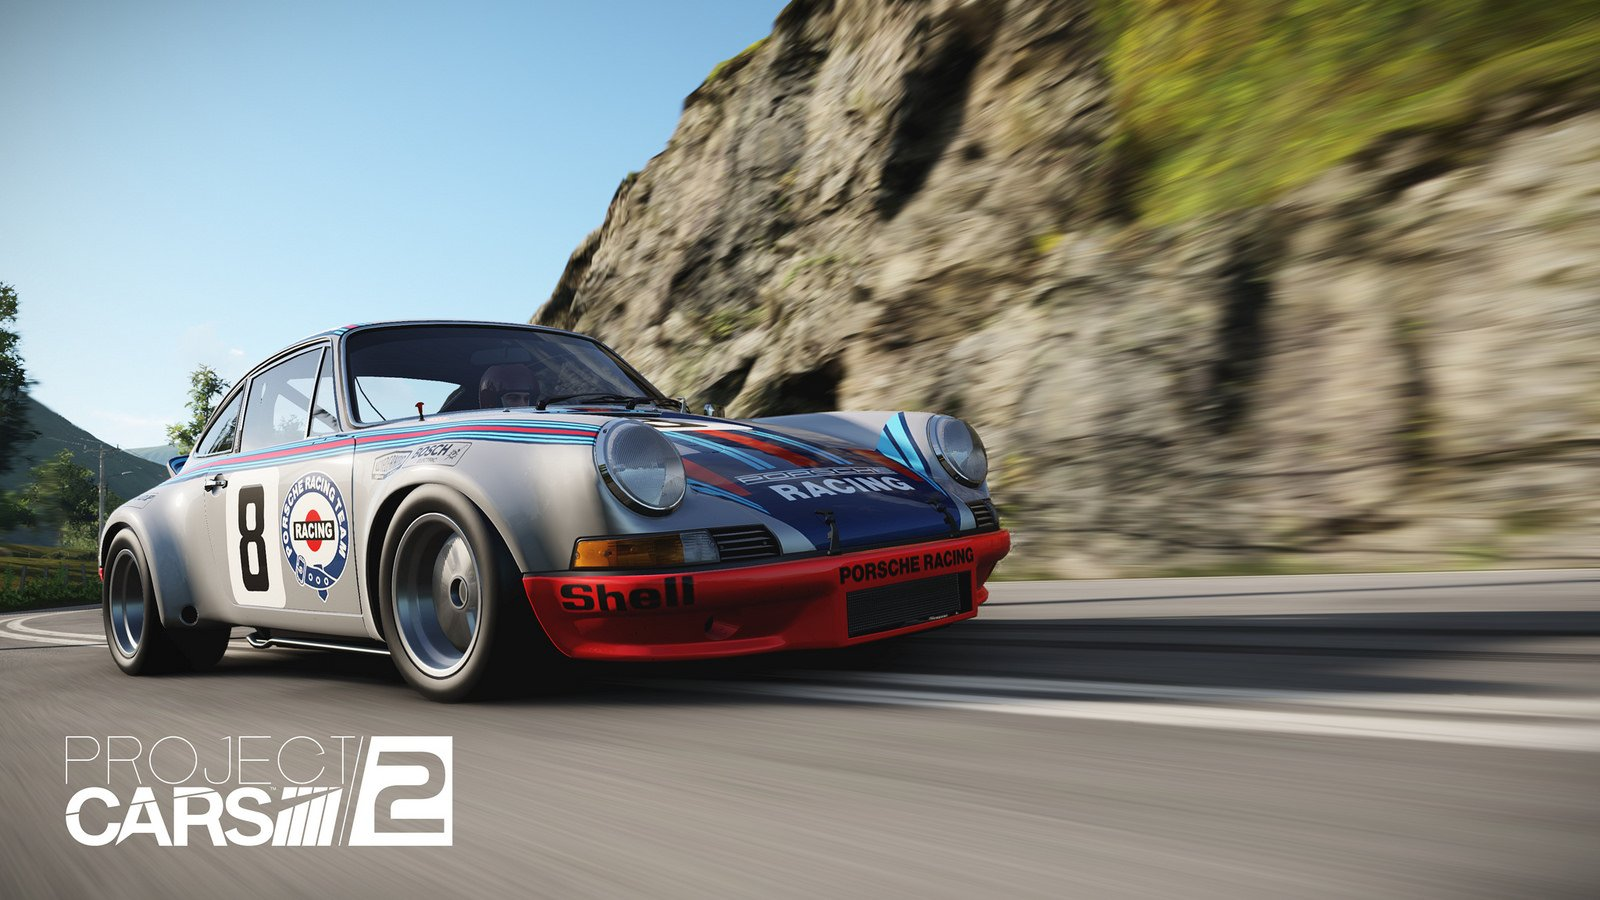 Project CARS 2 Porsche 911 RSR 2.8 preview